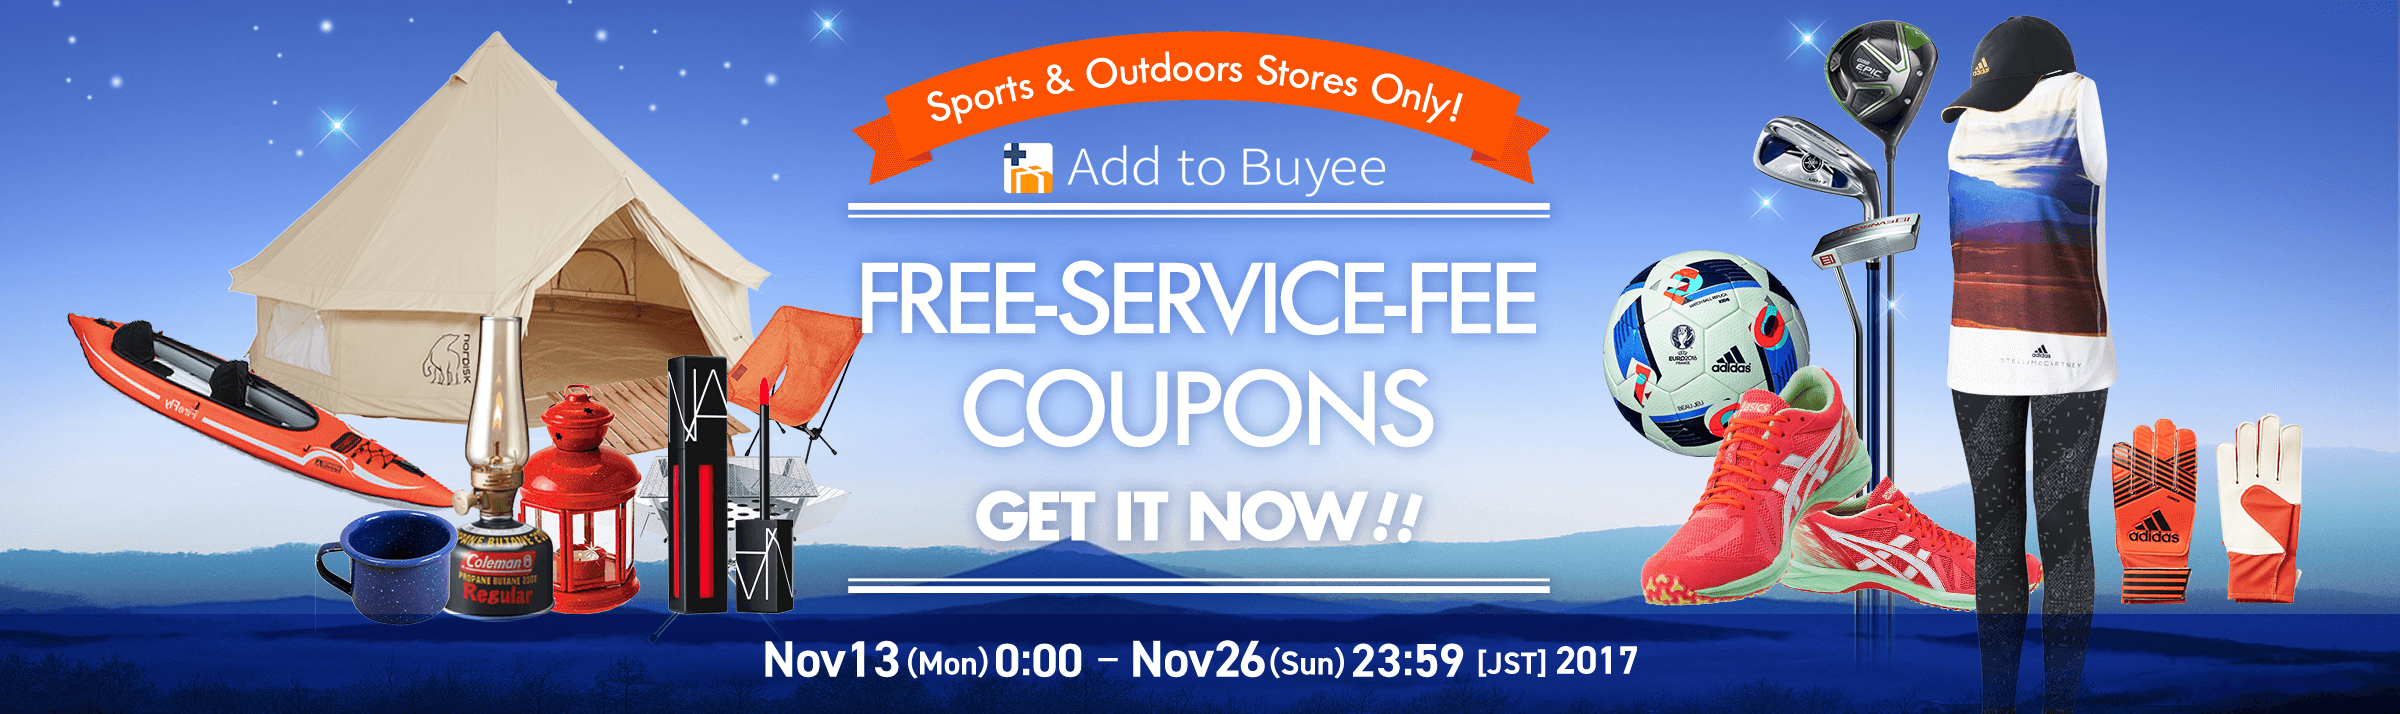 Free Service Fee Coupon Giveaway for Sports & Outdoors Stores Only!